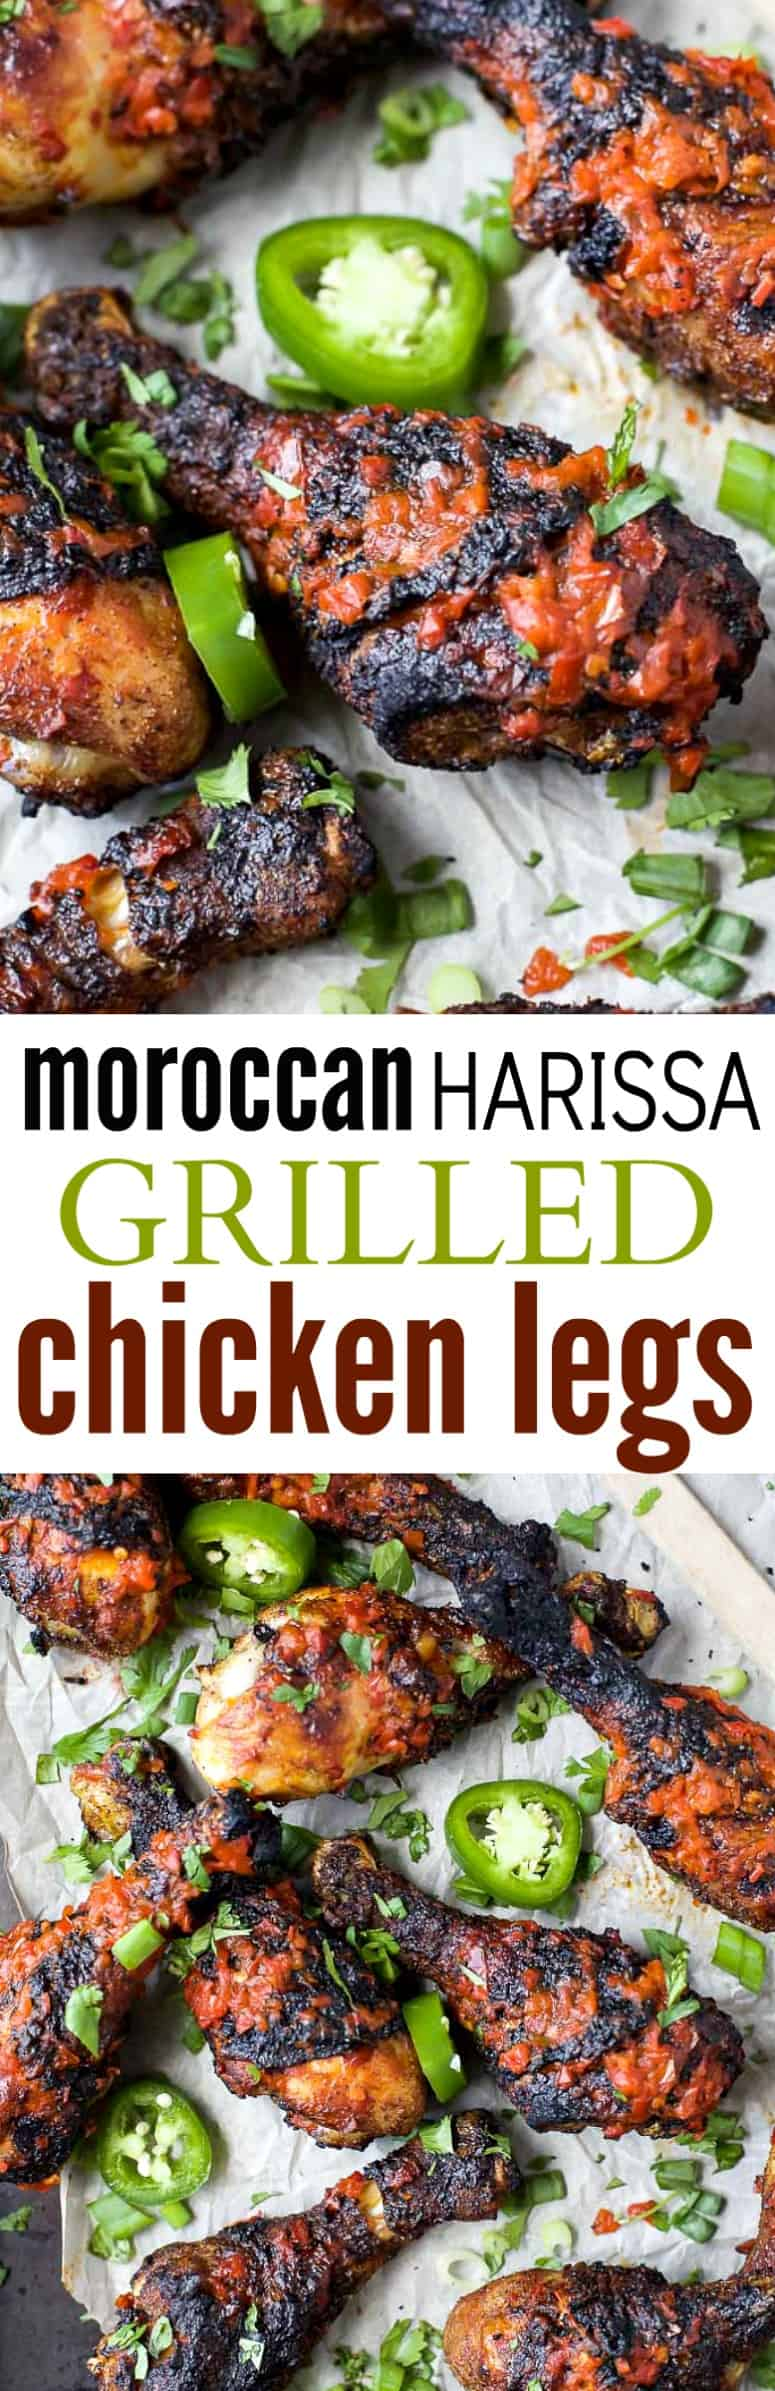 Moroccan Harissa Grilled Chicken Legs the perfect grilling recipe to wow the crowd this summer!   gluten free recipes